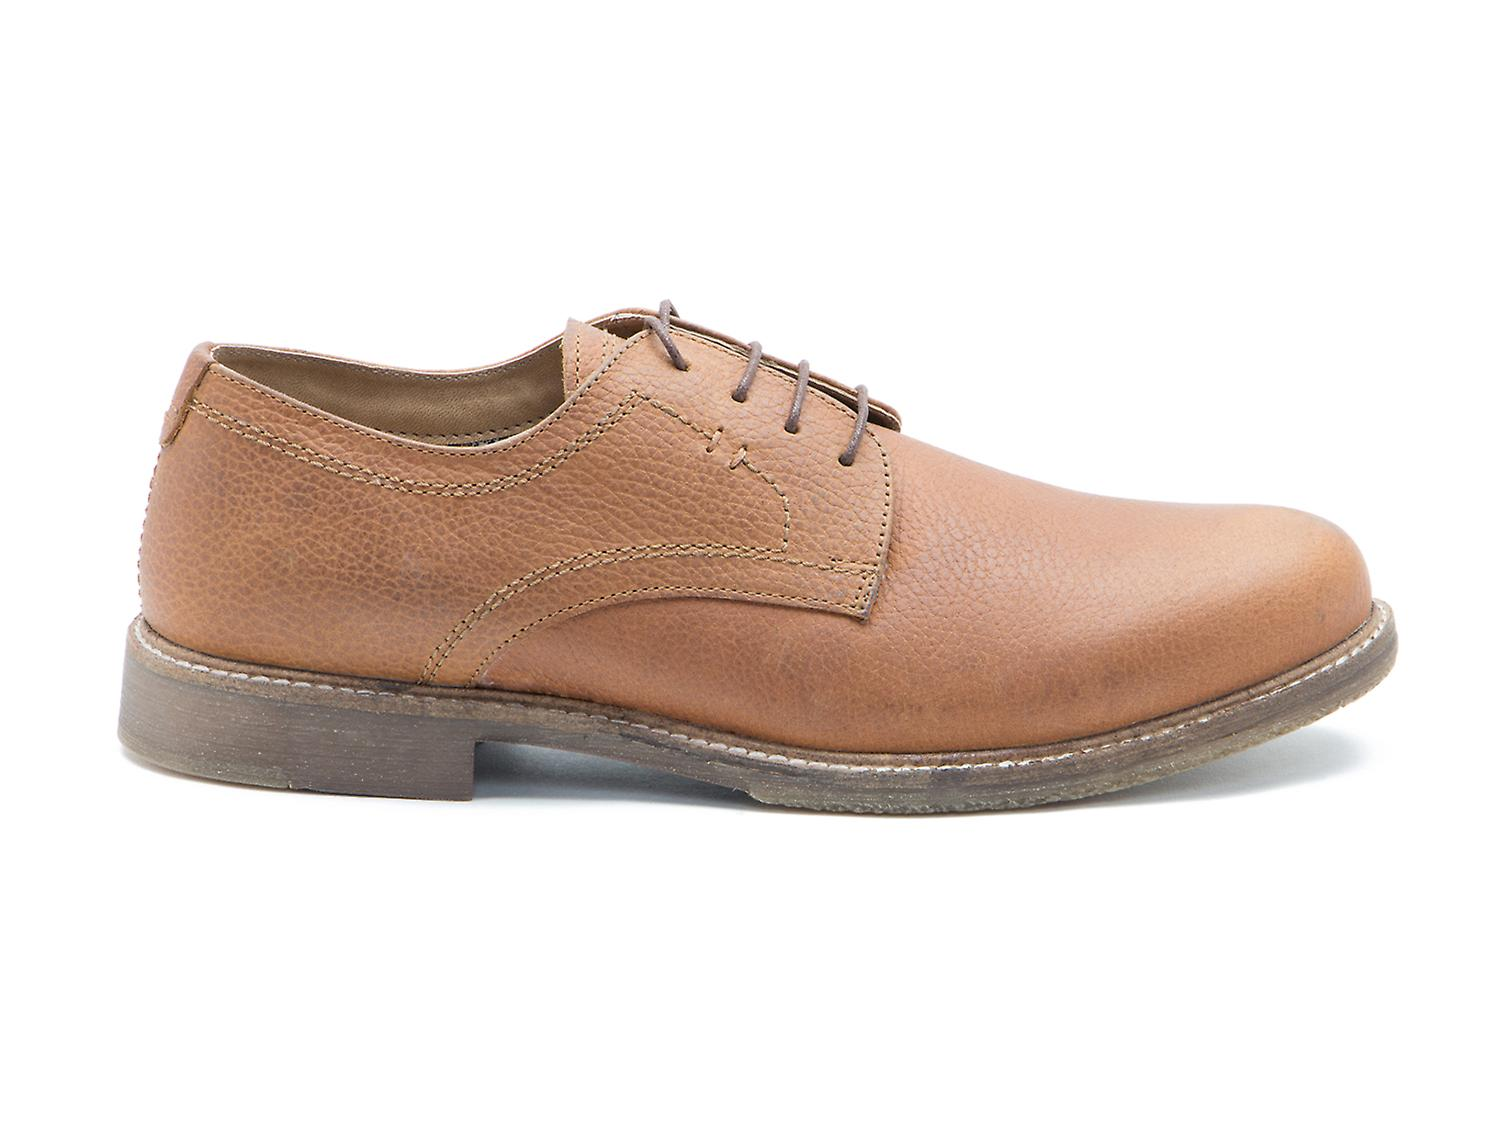 With Paypal Cheap Online Best Seller For Sale Mens Marlow Derbys Redtape 9YmAl7fM